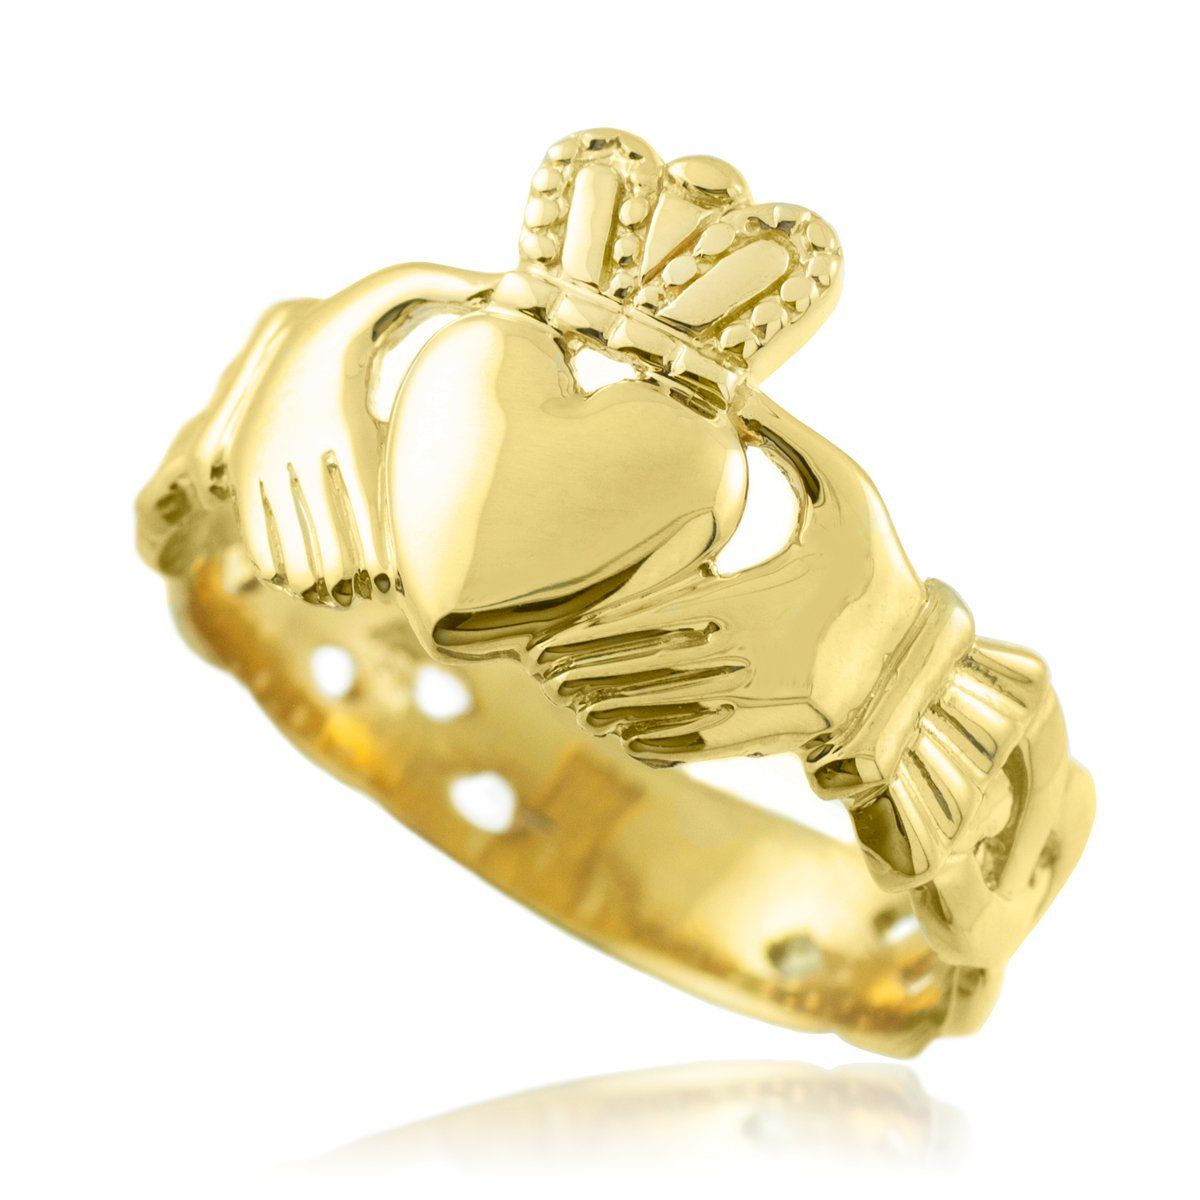 Pin by jean on off to the future pinterest claddagh and bald